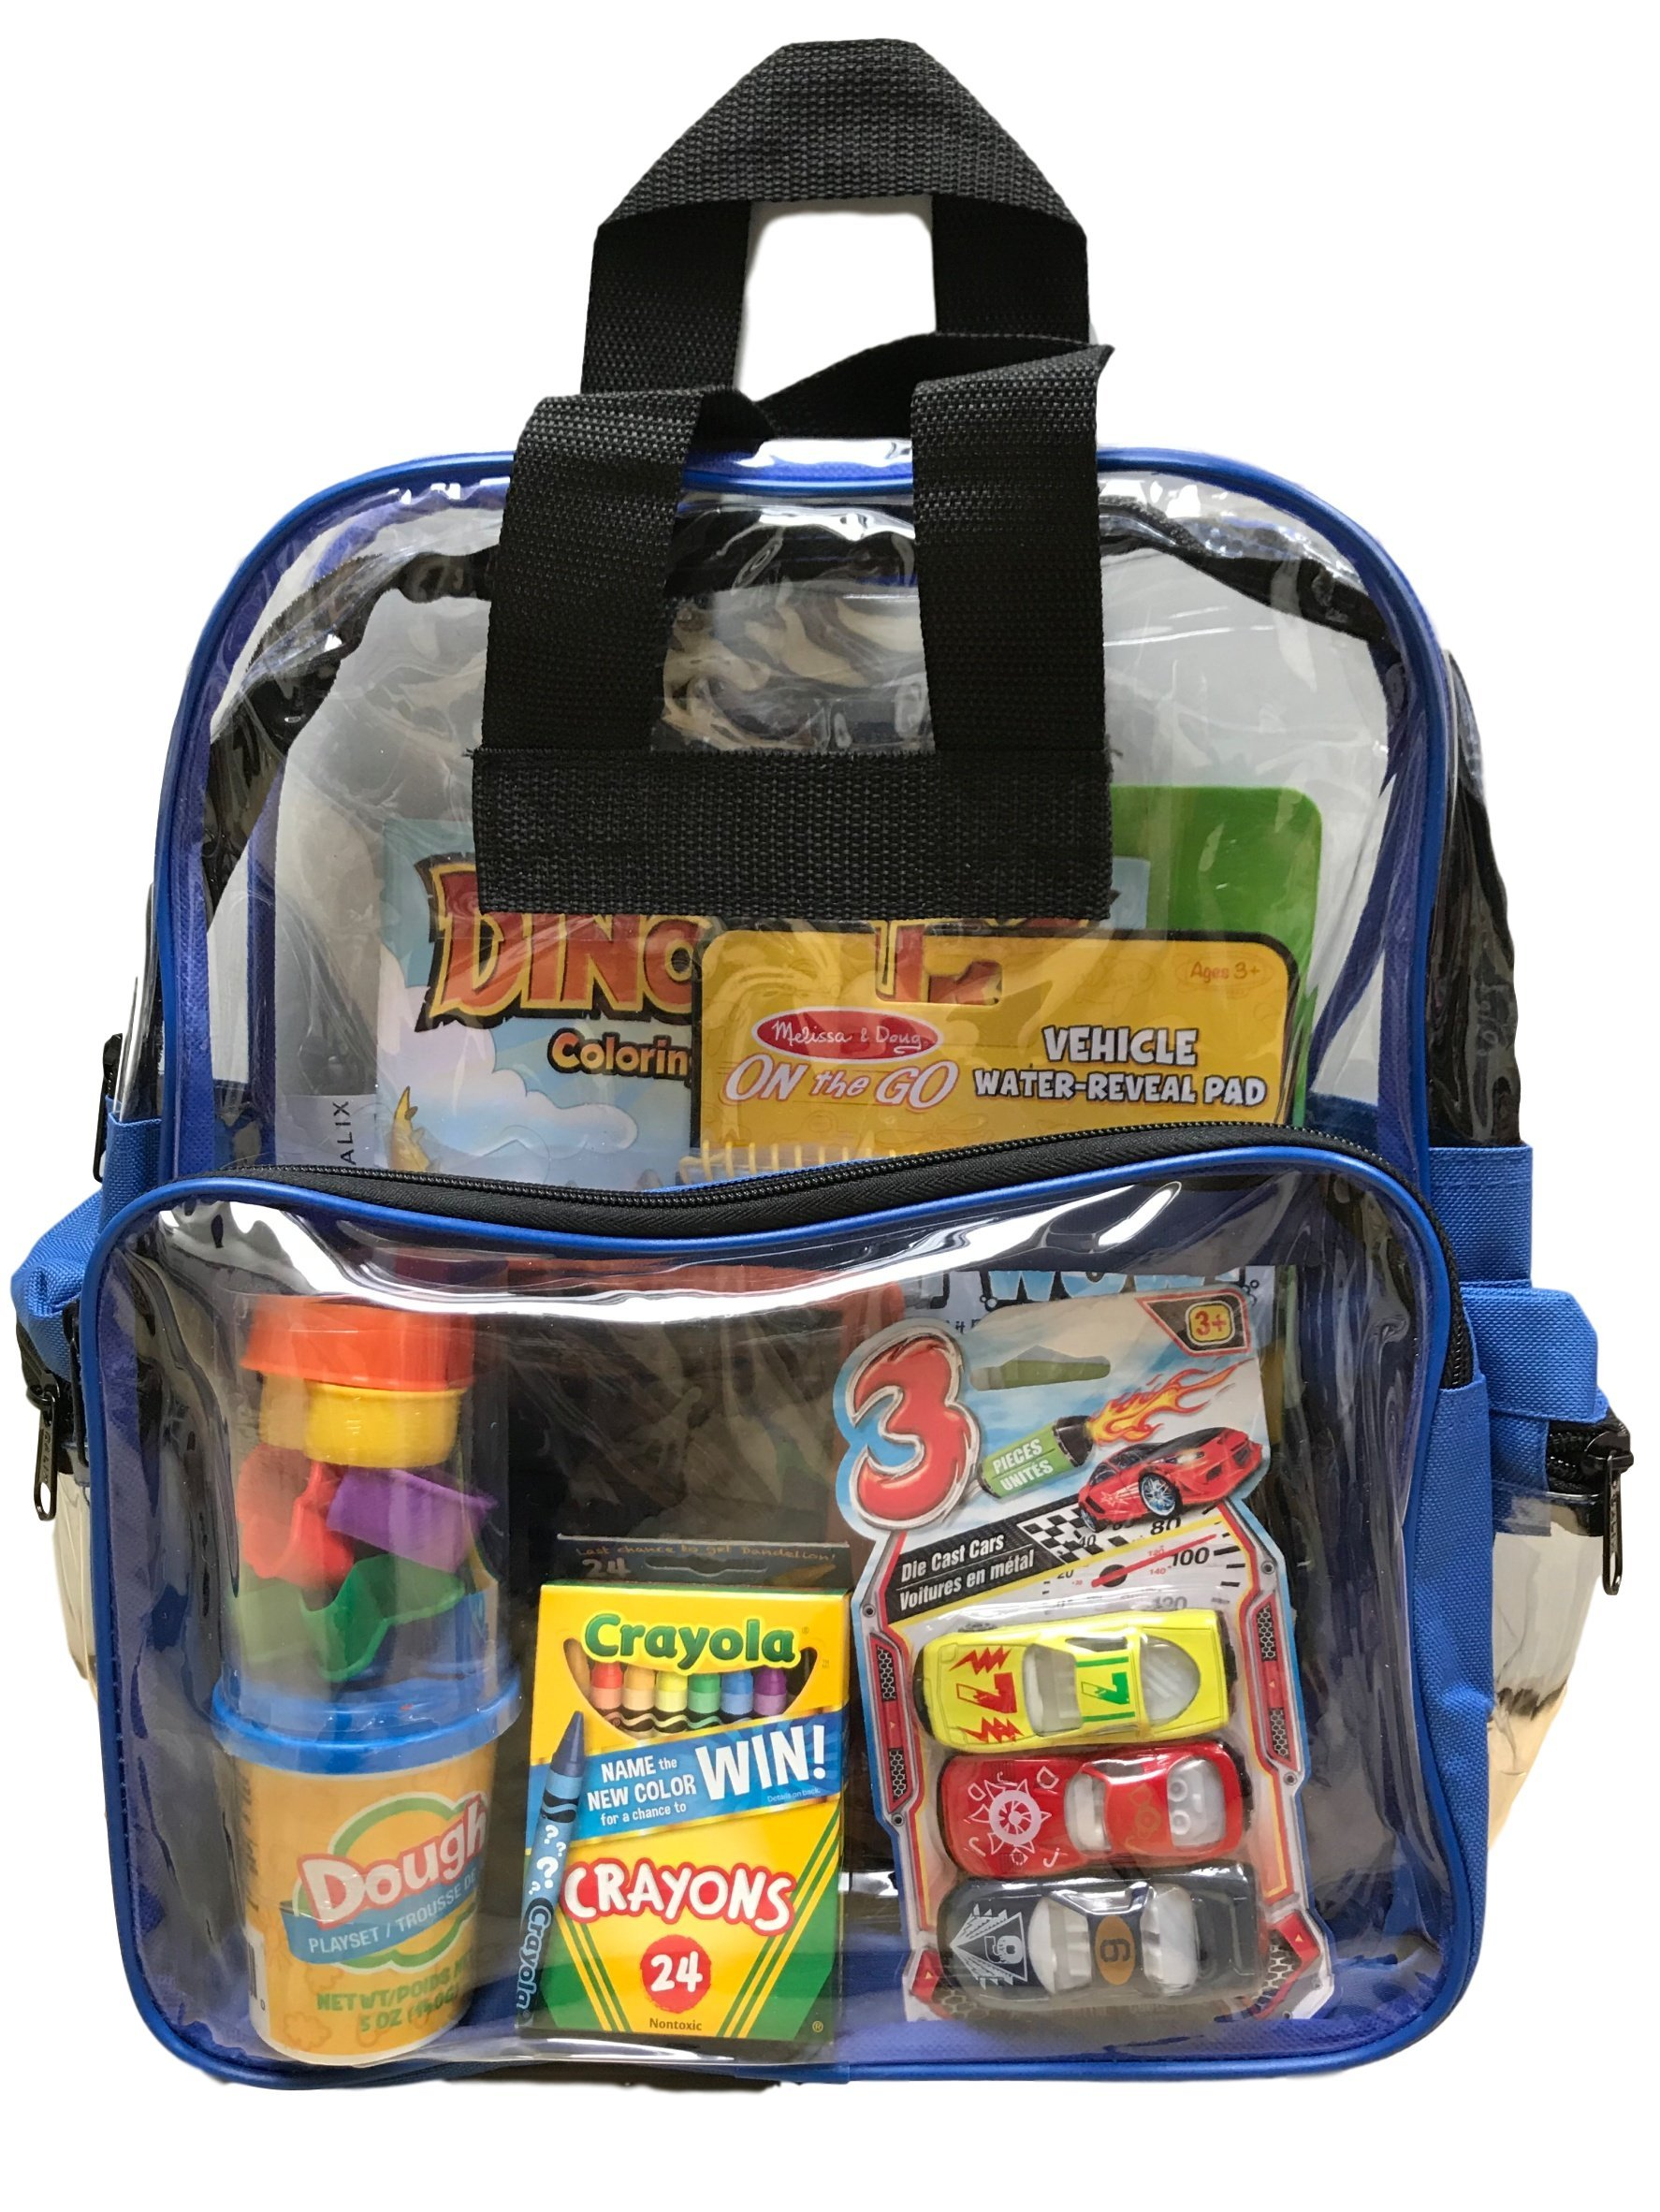 BusyBags - Activity Travel Bags Kids - Hours Quiet Activities - Durable See Through Backpack - Keep Your Kids Busy on Airplanes, roadtrips, Waiting at restuarants, etc. - Boys